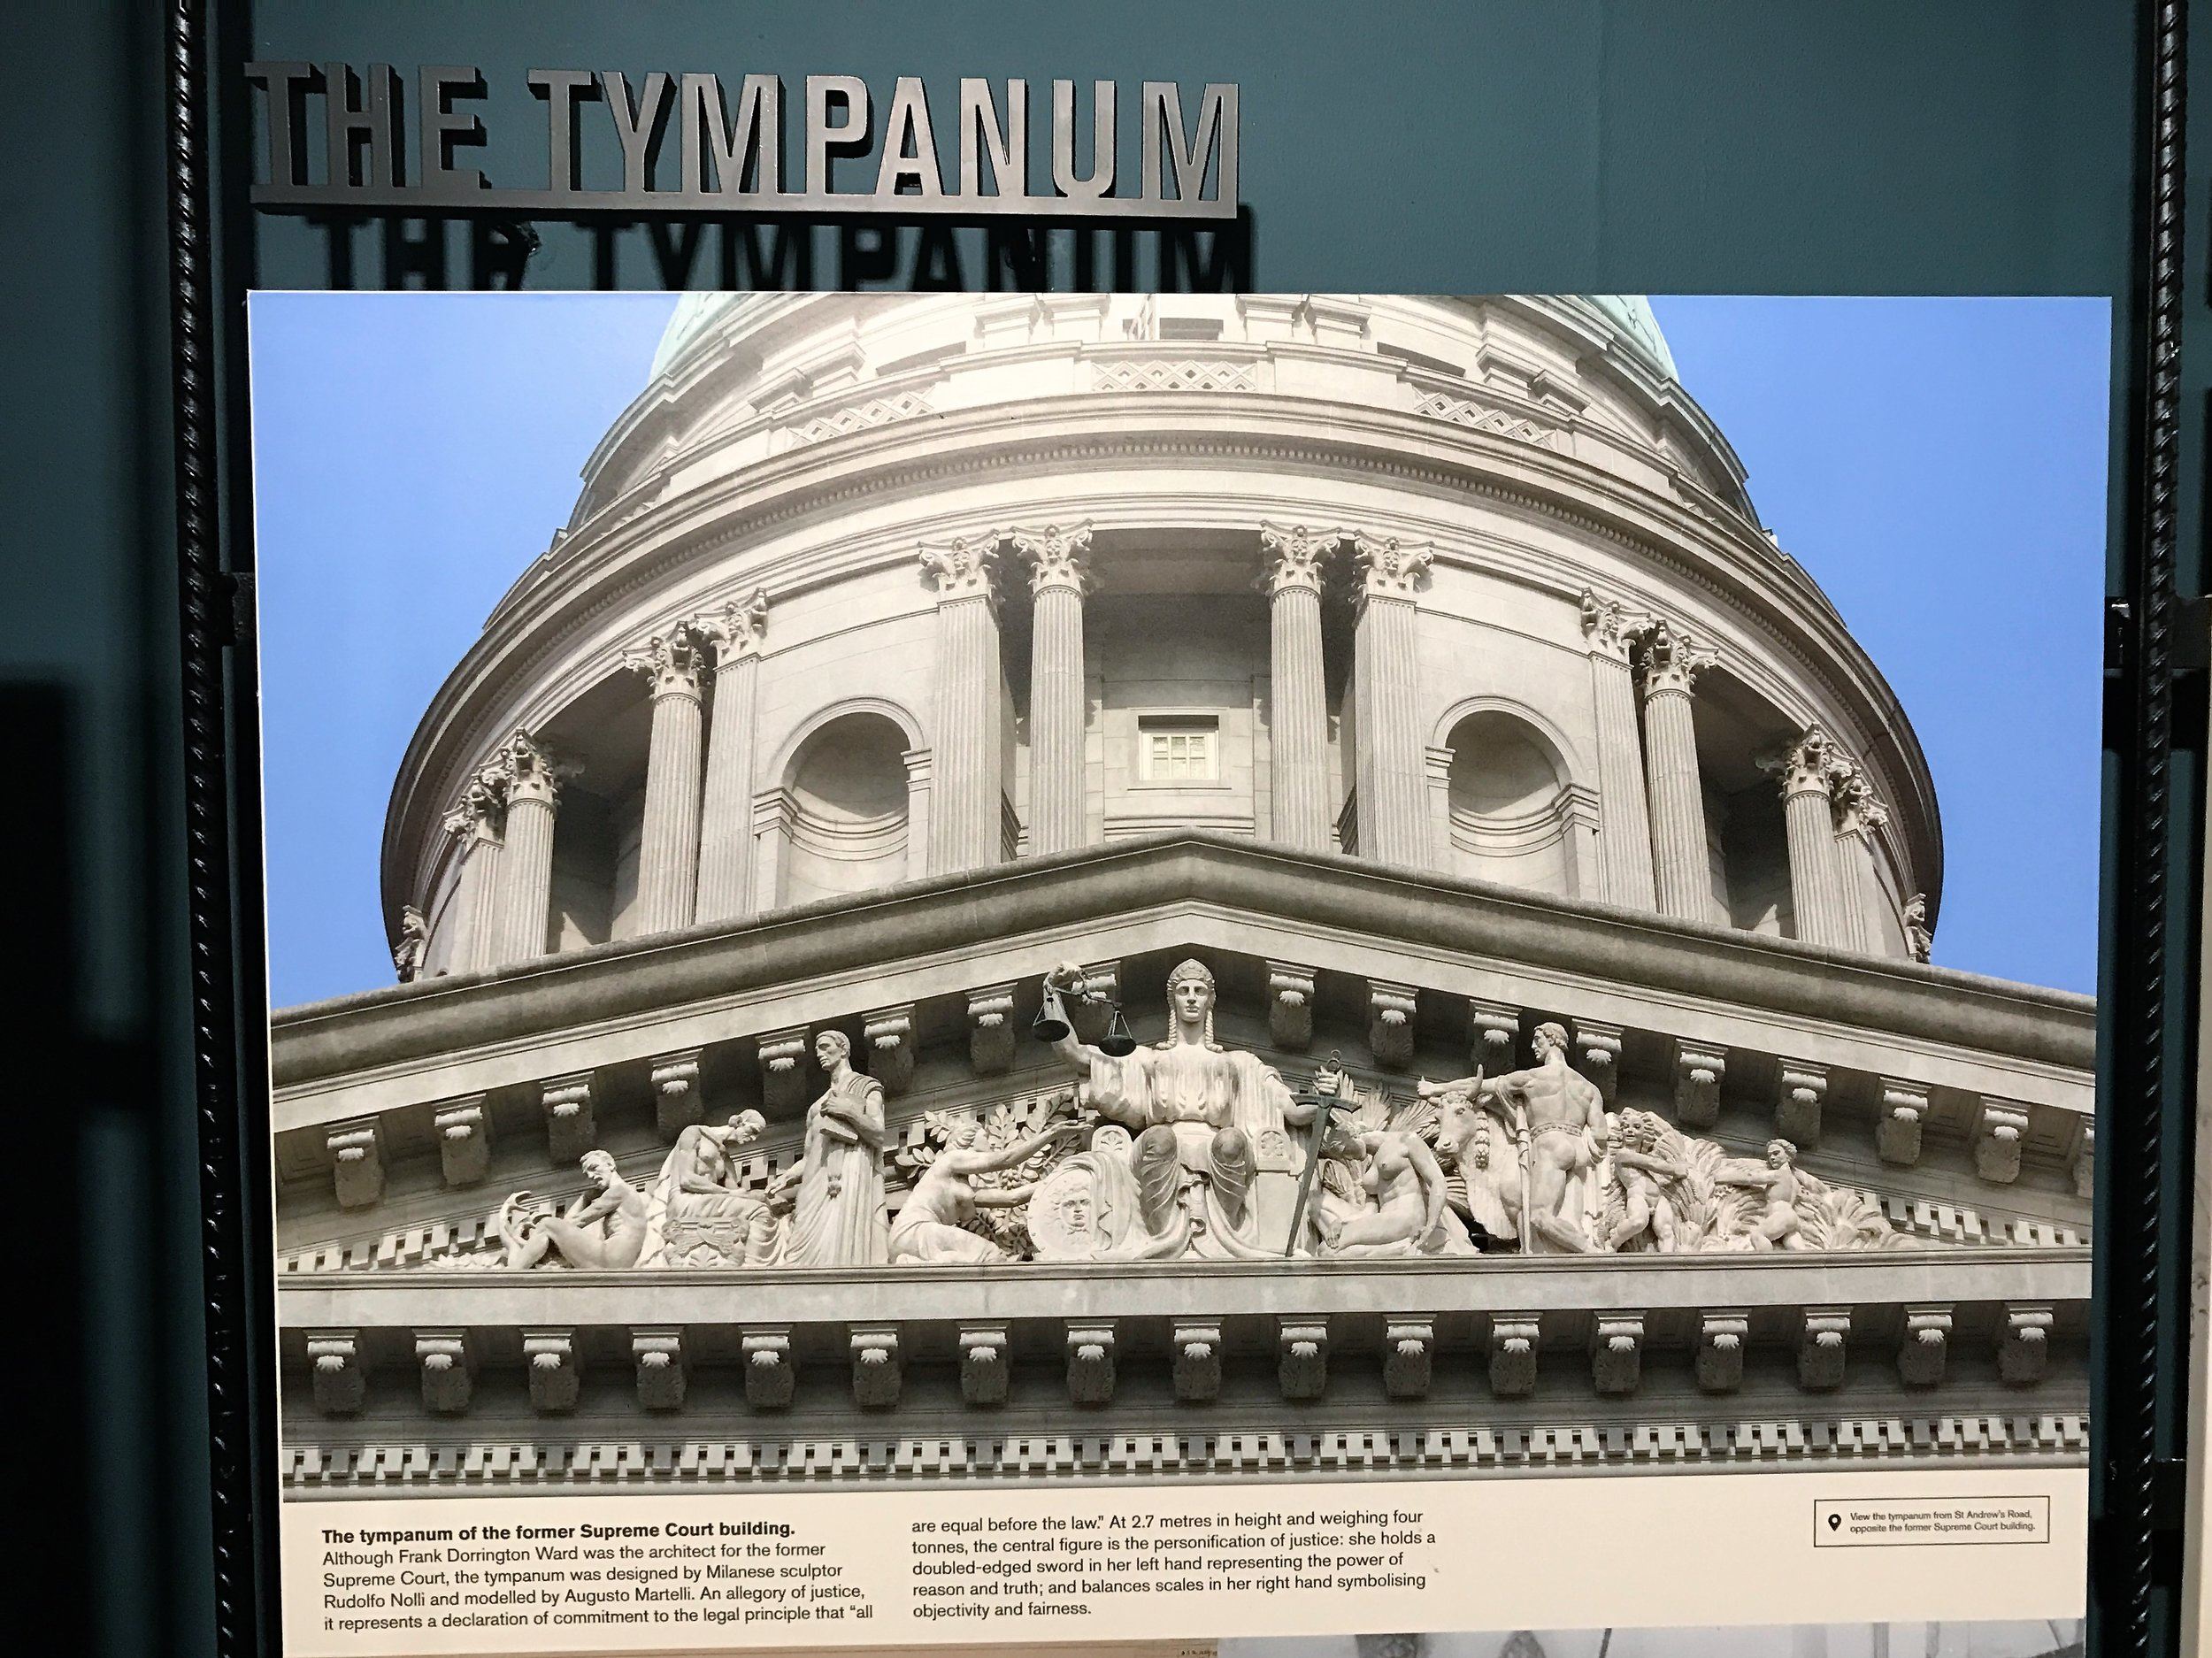 The Tympanum at National Gallery Singapore